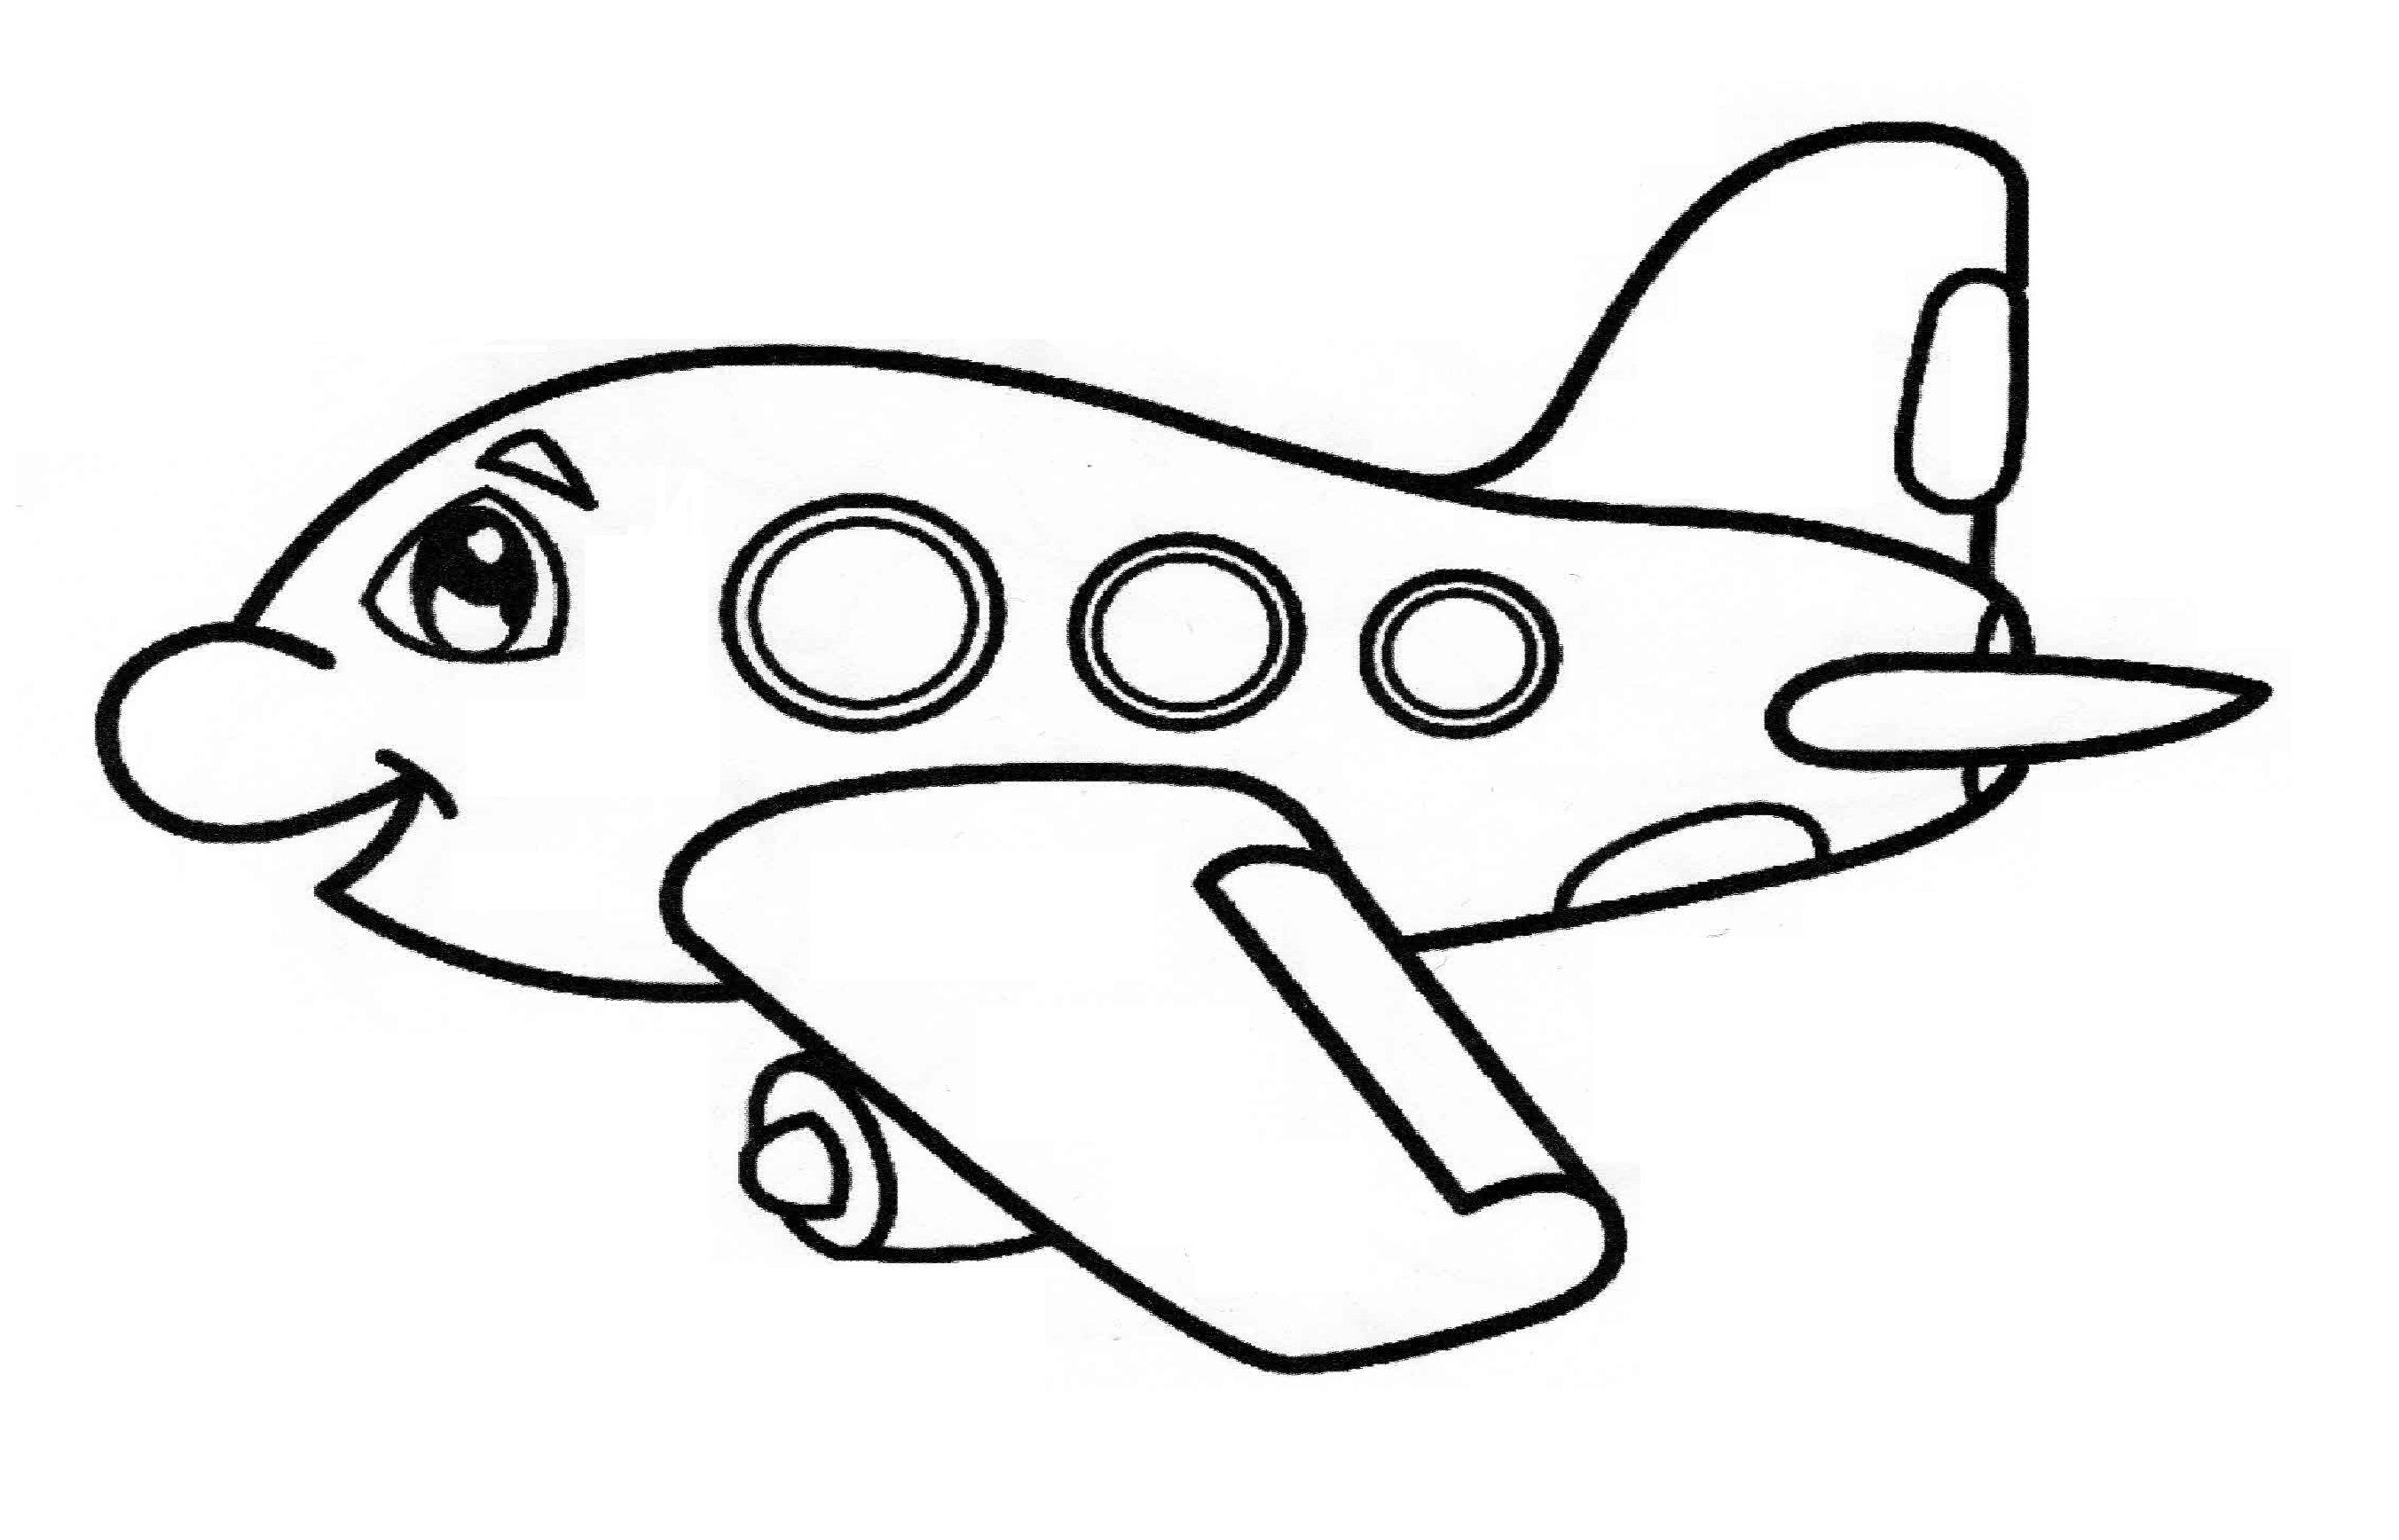 Airplane Coloring Page For Preschool And Kindergarten Preschool